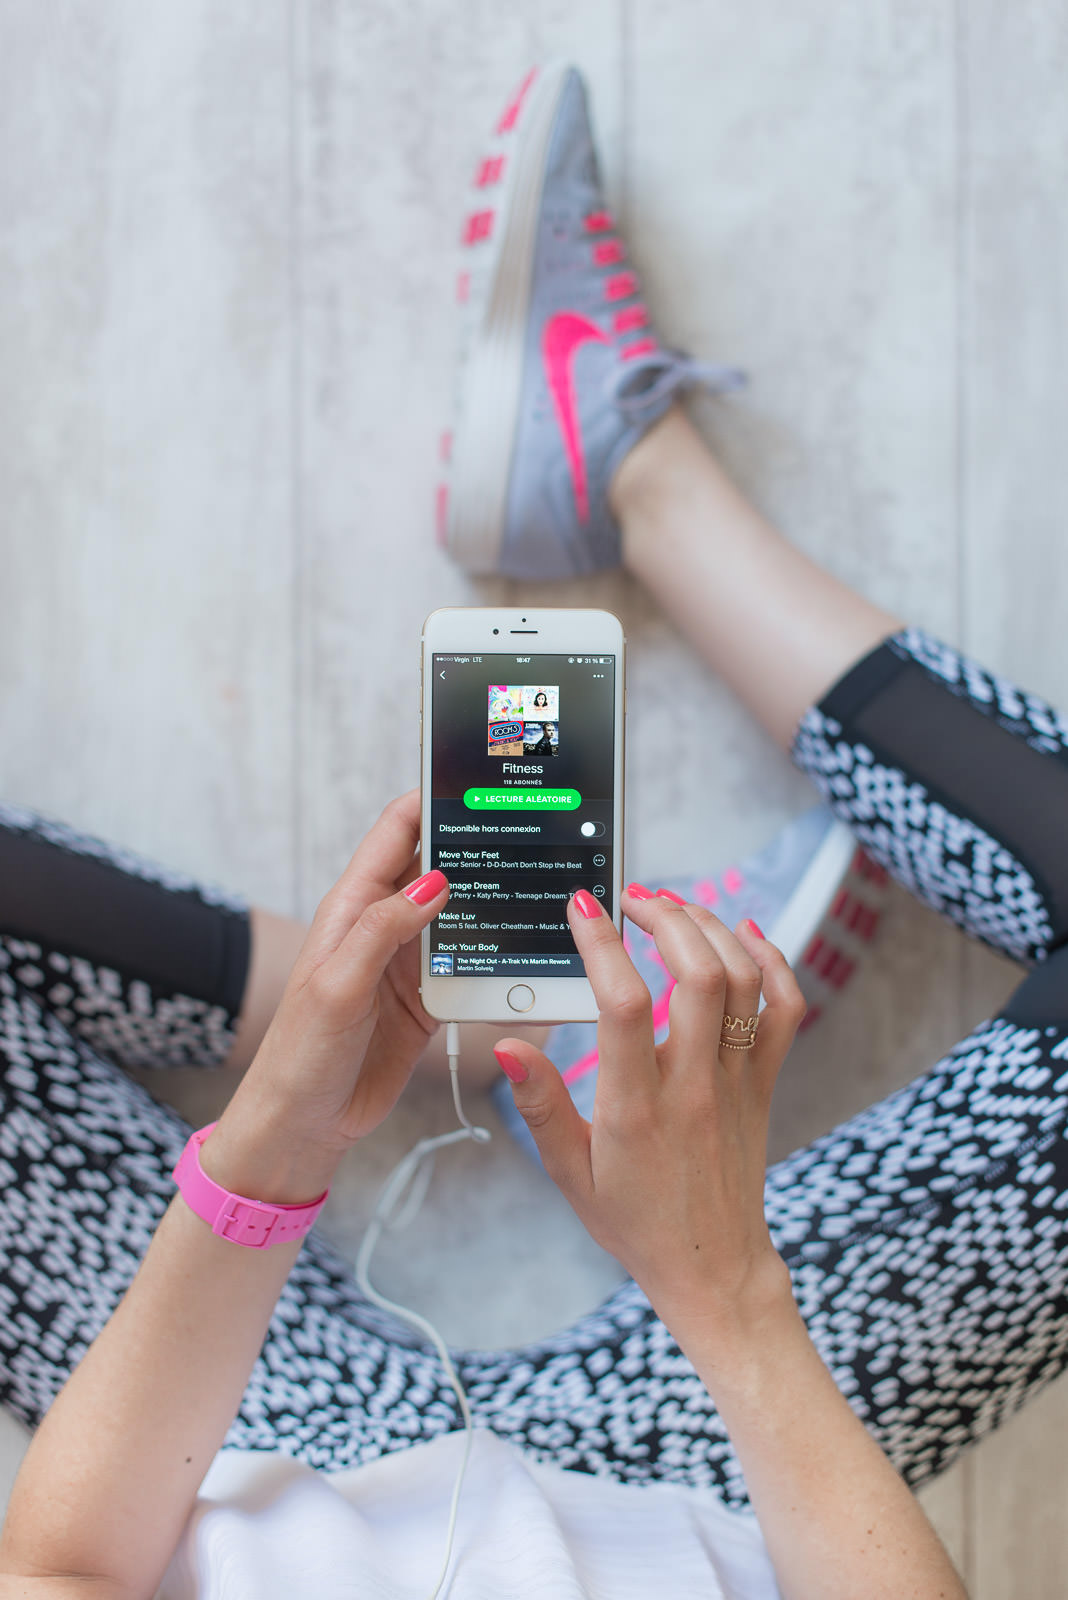 Blog-Mode-And-The-City-Lifestyle-Nike-Women-Paris-Playlist-Pour-Faire-Du-Sport-2